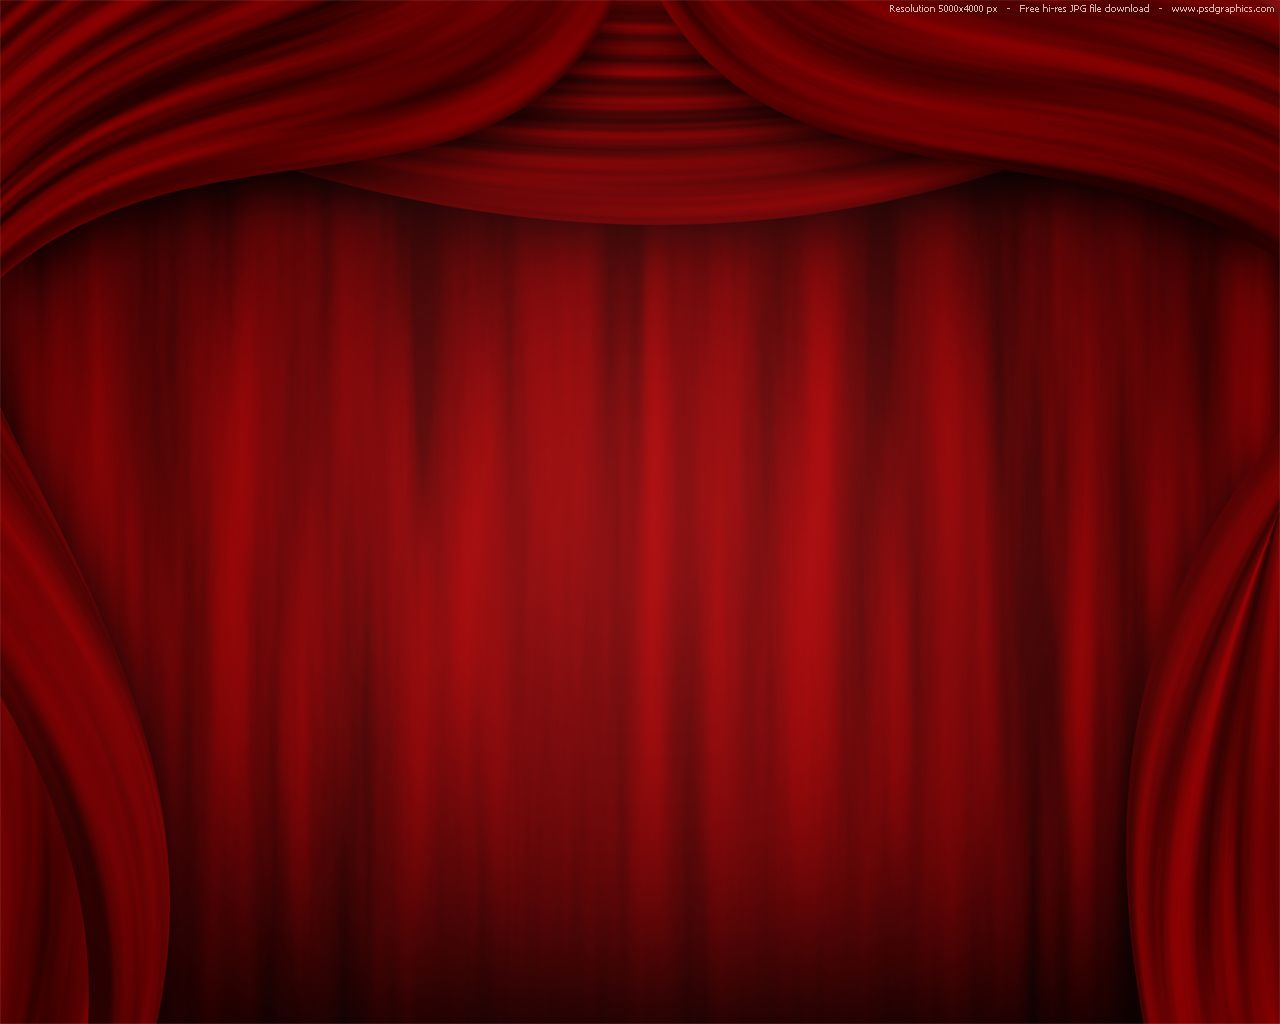 Red velvet curtains stage - Theatrical Curtain Old Fashioned Elegant Theater Stage With Red Velvet Curtains Description From Curtainss